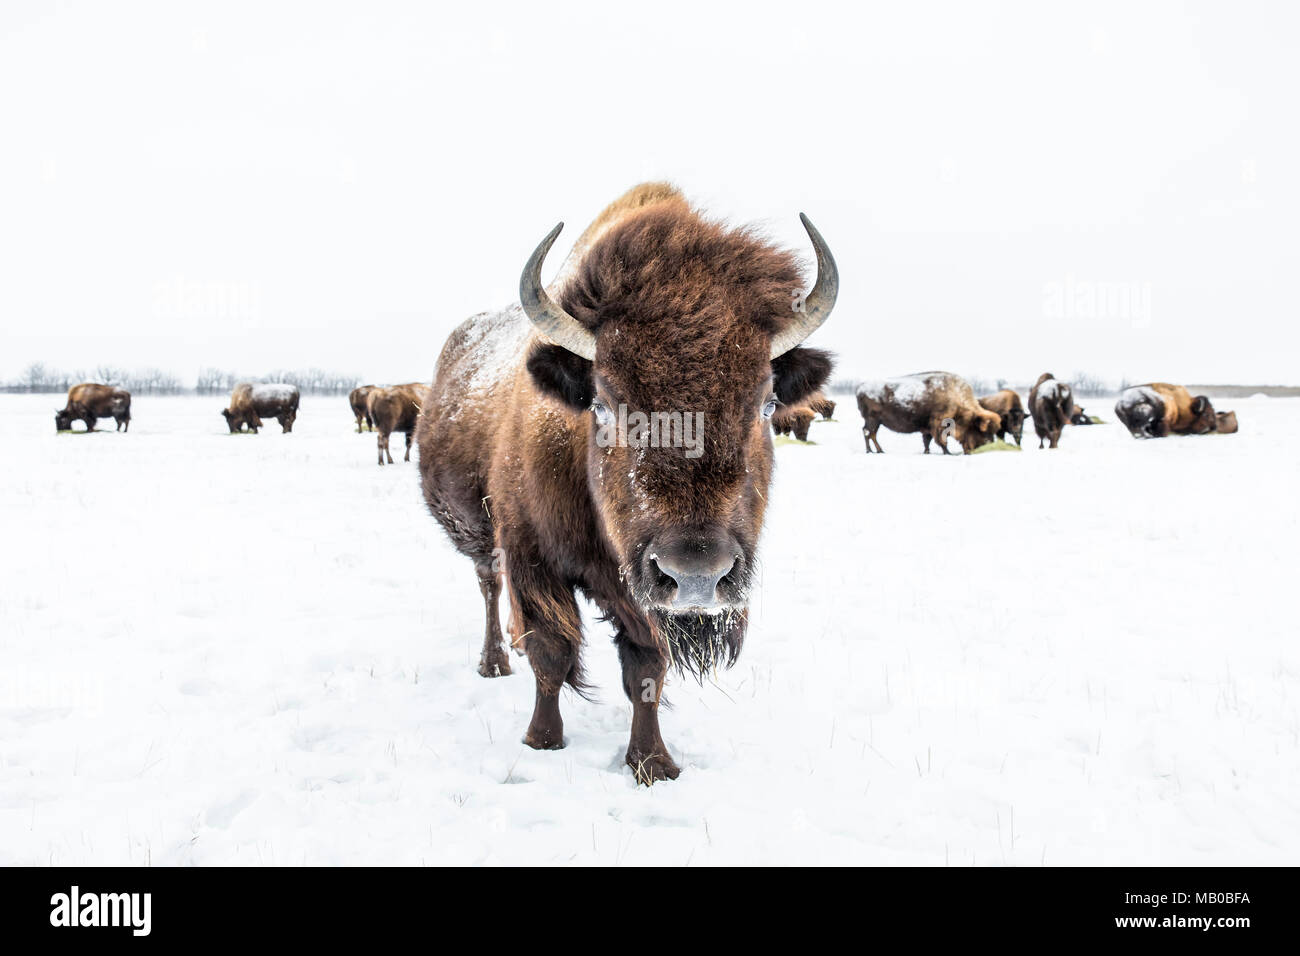 Herd of American Bison, or Plains Bison, (Bison bison bison) in winter, Manitoba, Canada. Stock Photo